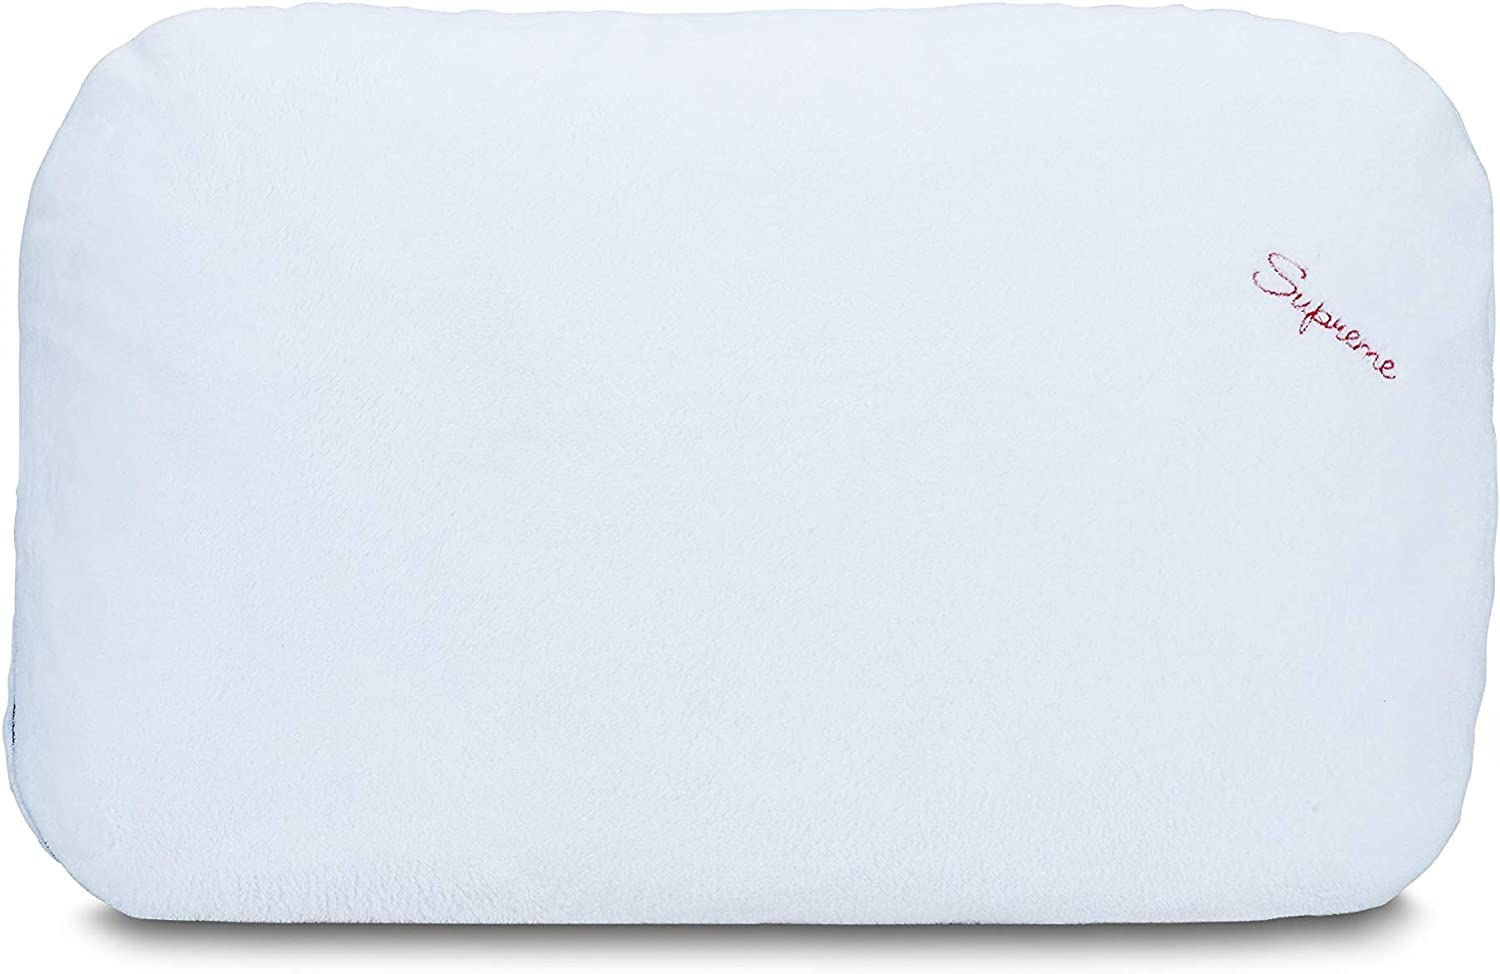 Quality inspection I Love Pillow Supreme Queen White Easy-to-use